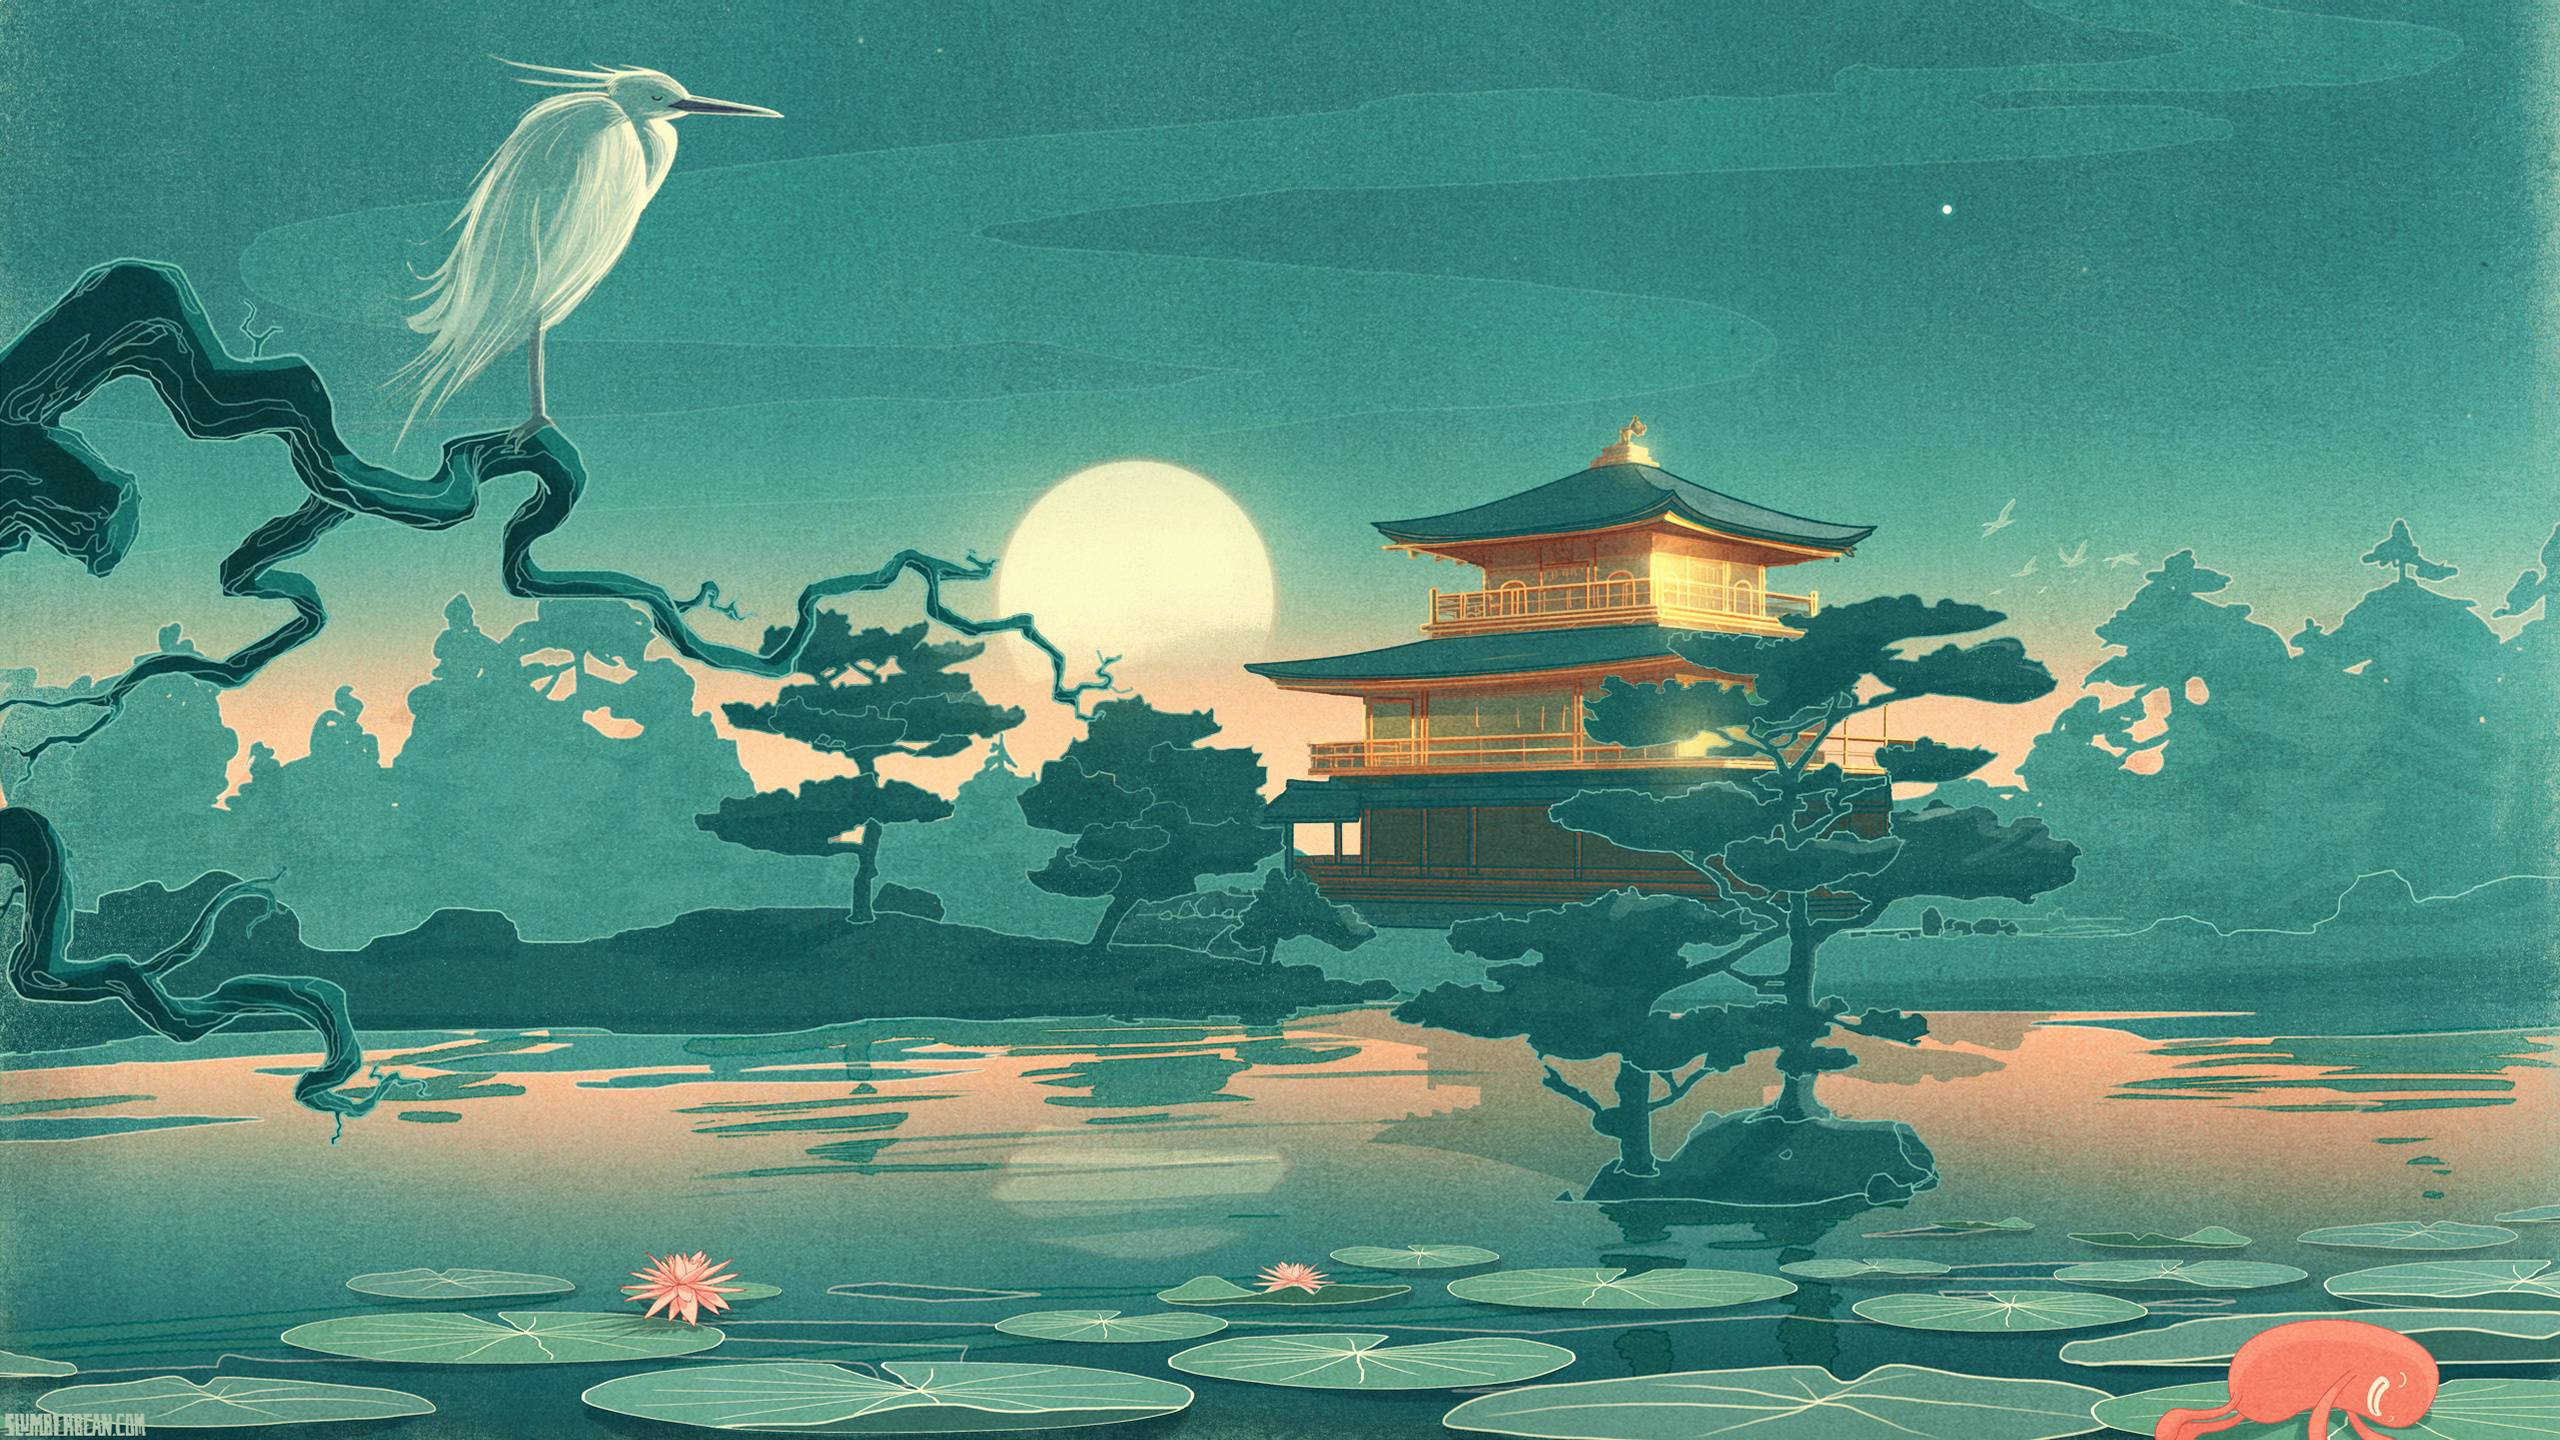 Images of Japanese Art | 2560x1440